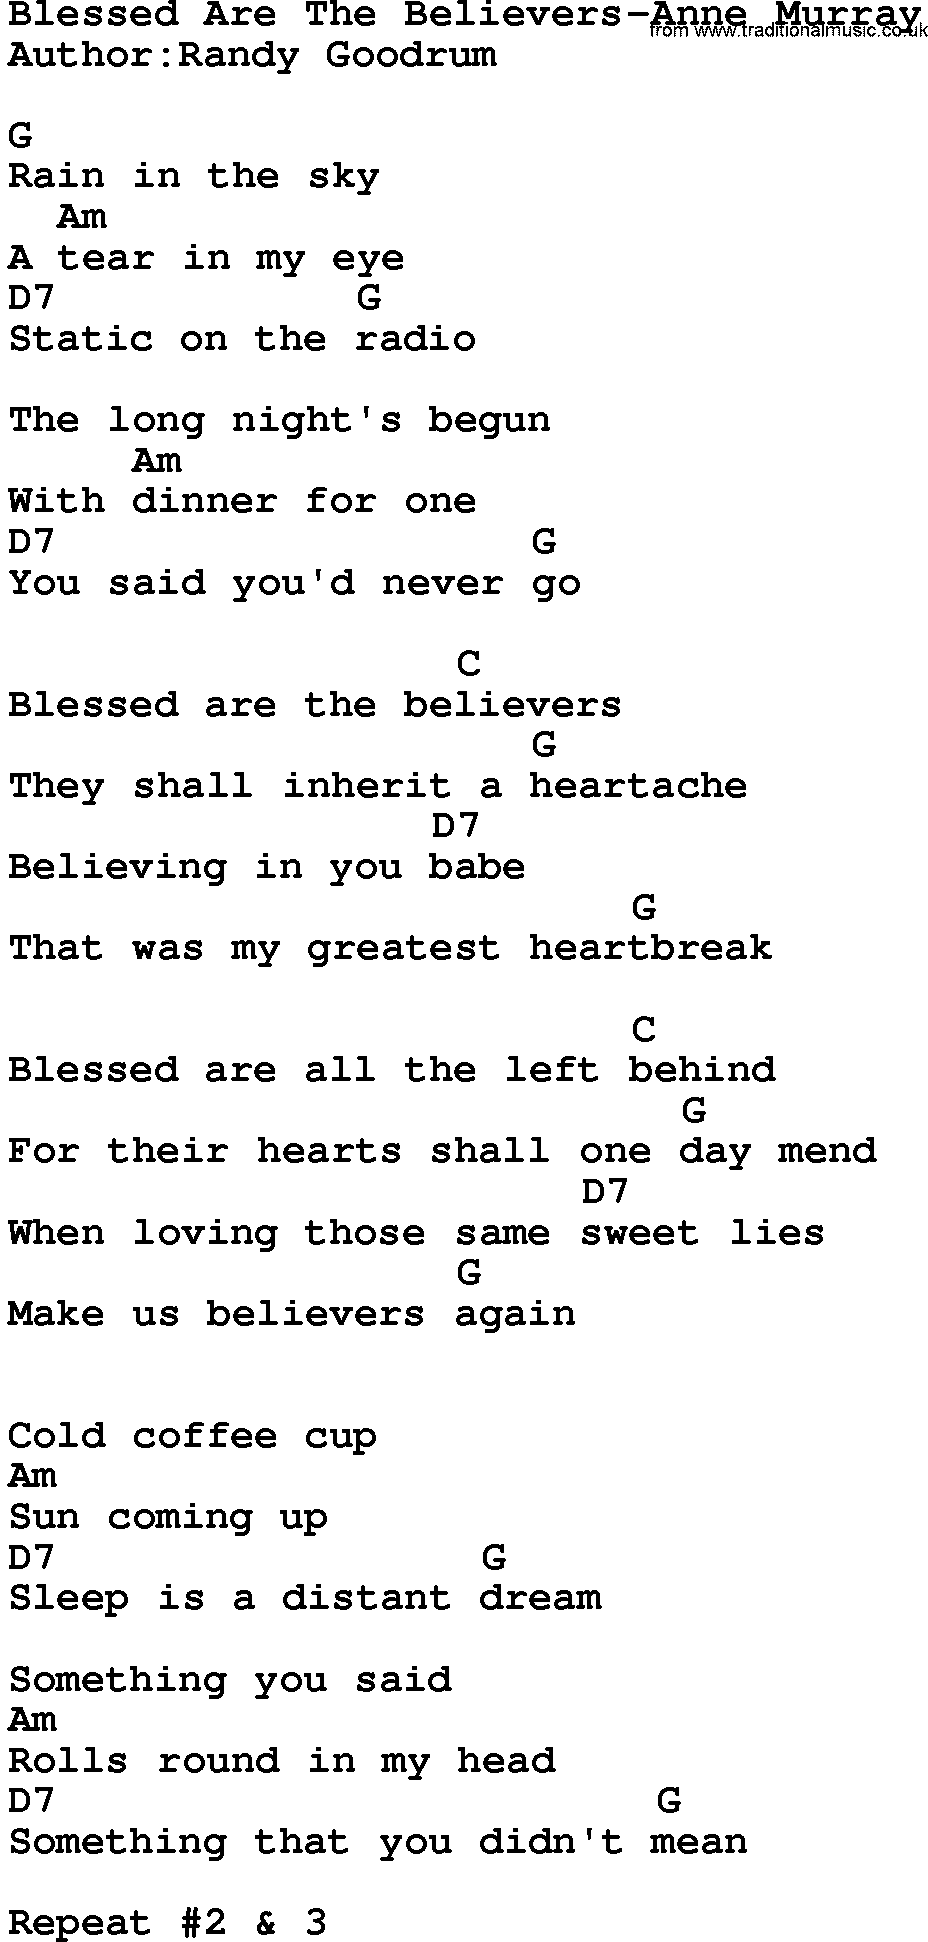 Country Music:Blessed Are The Believers-Anne Murray Lyrics